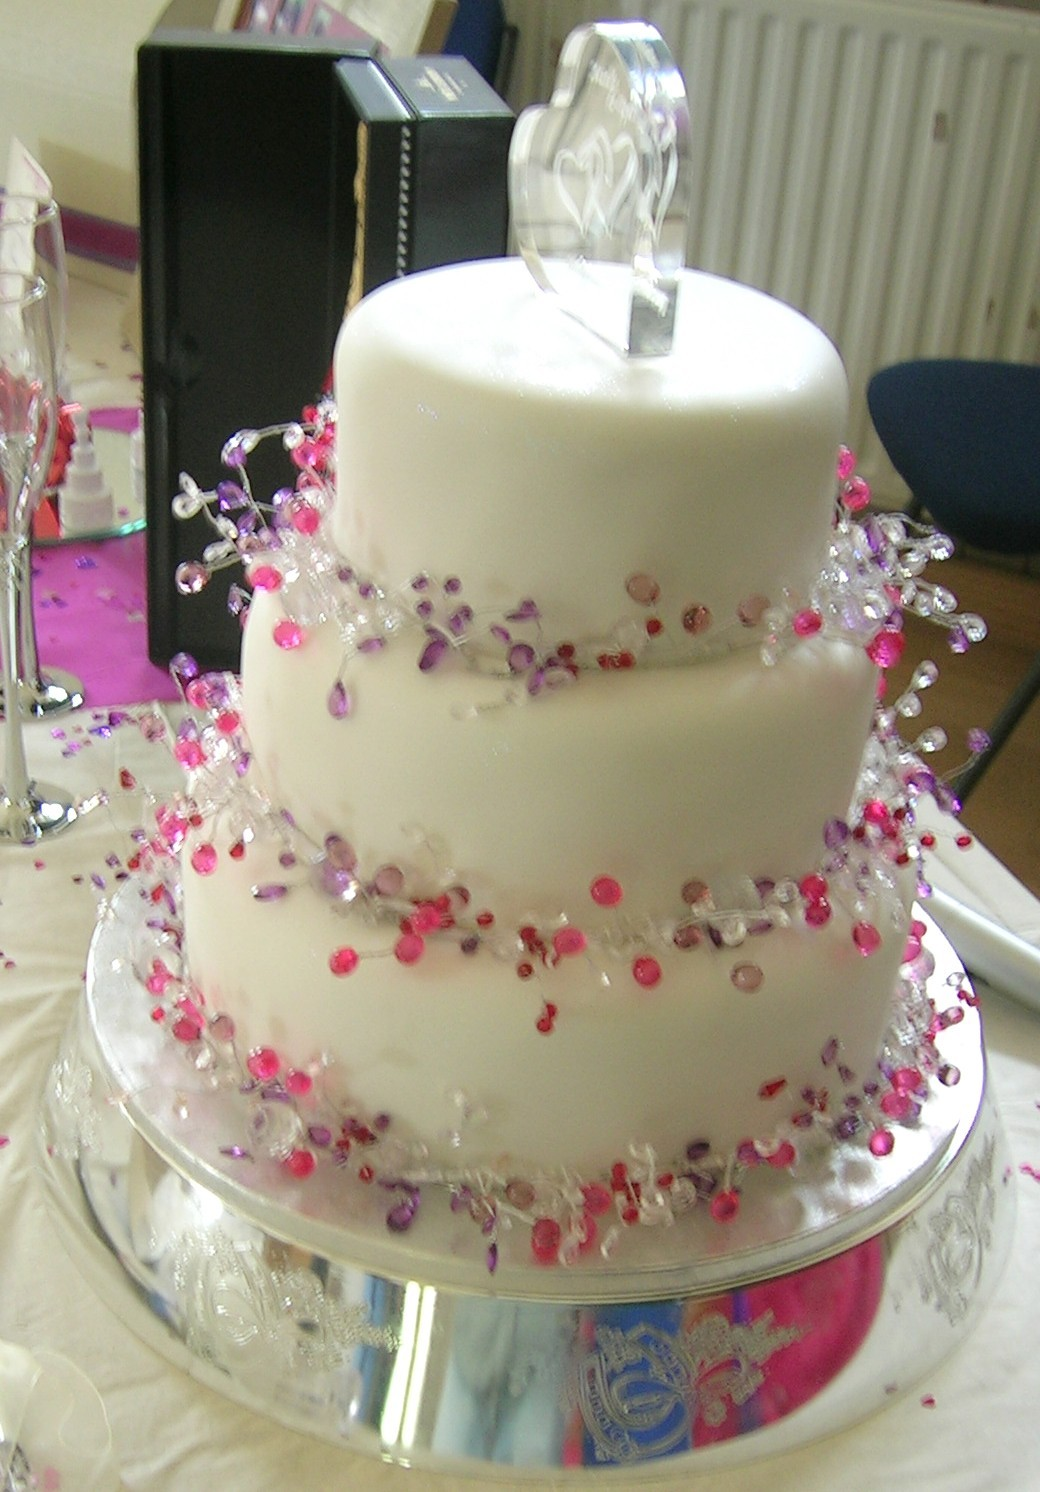 Simple Decoration Ideas For Cake : Wedding Pictures Wedding Photos: Wedding Cake Decorating ...